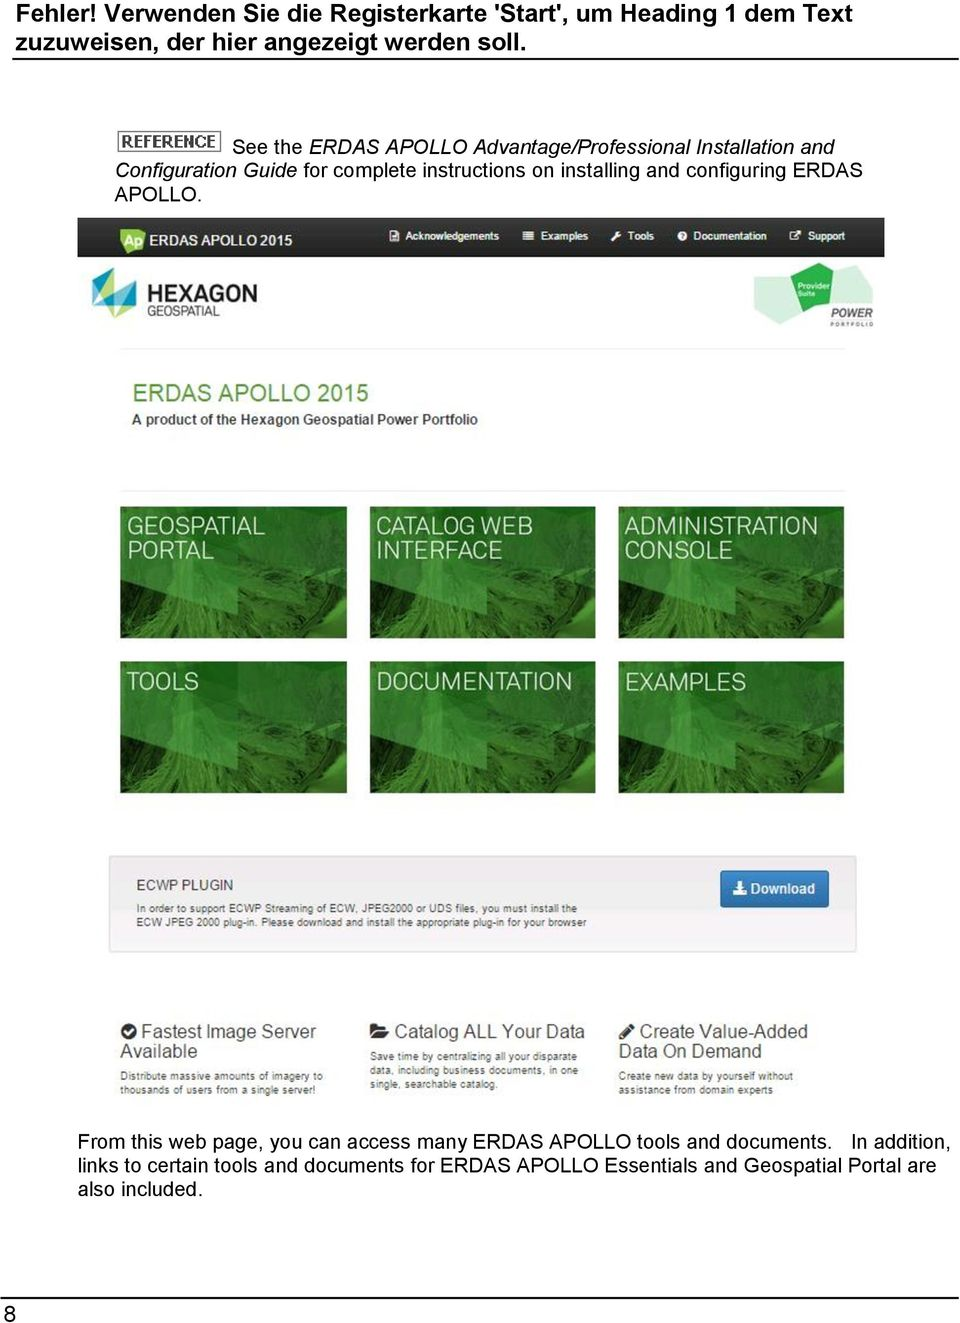 From this web page, you can access many ERDAS APOLLO tools and documents.